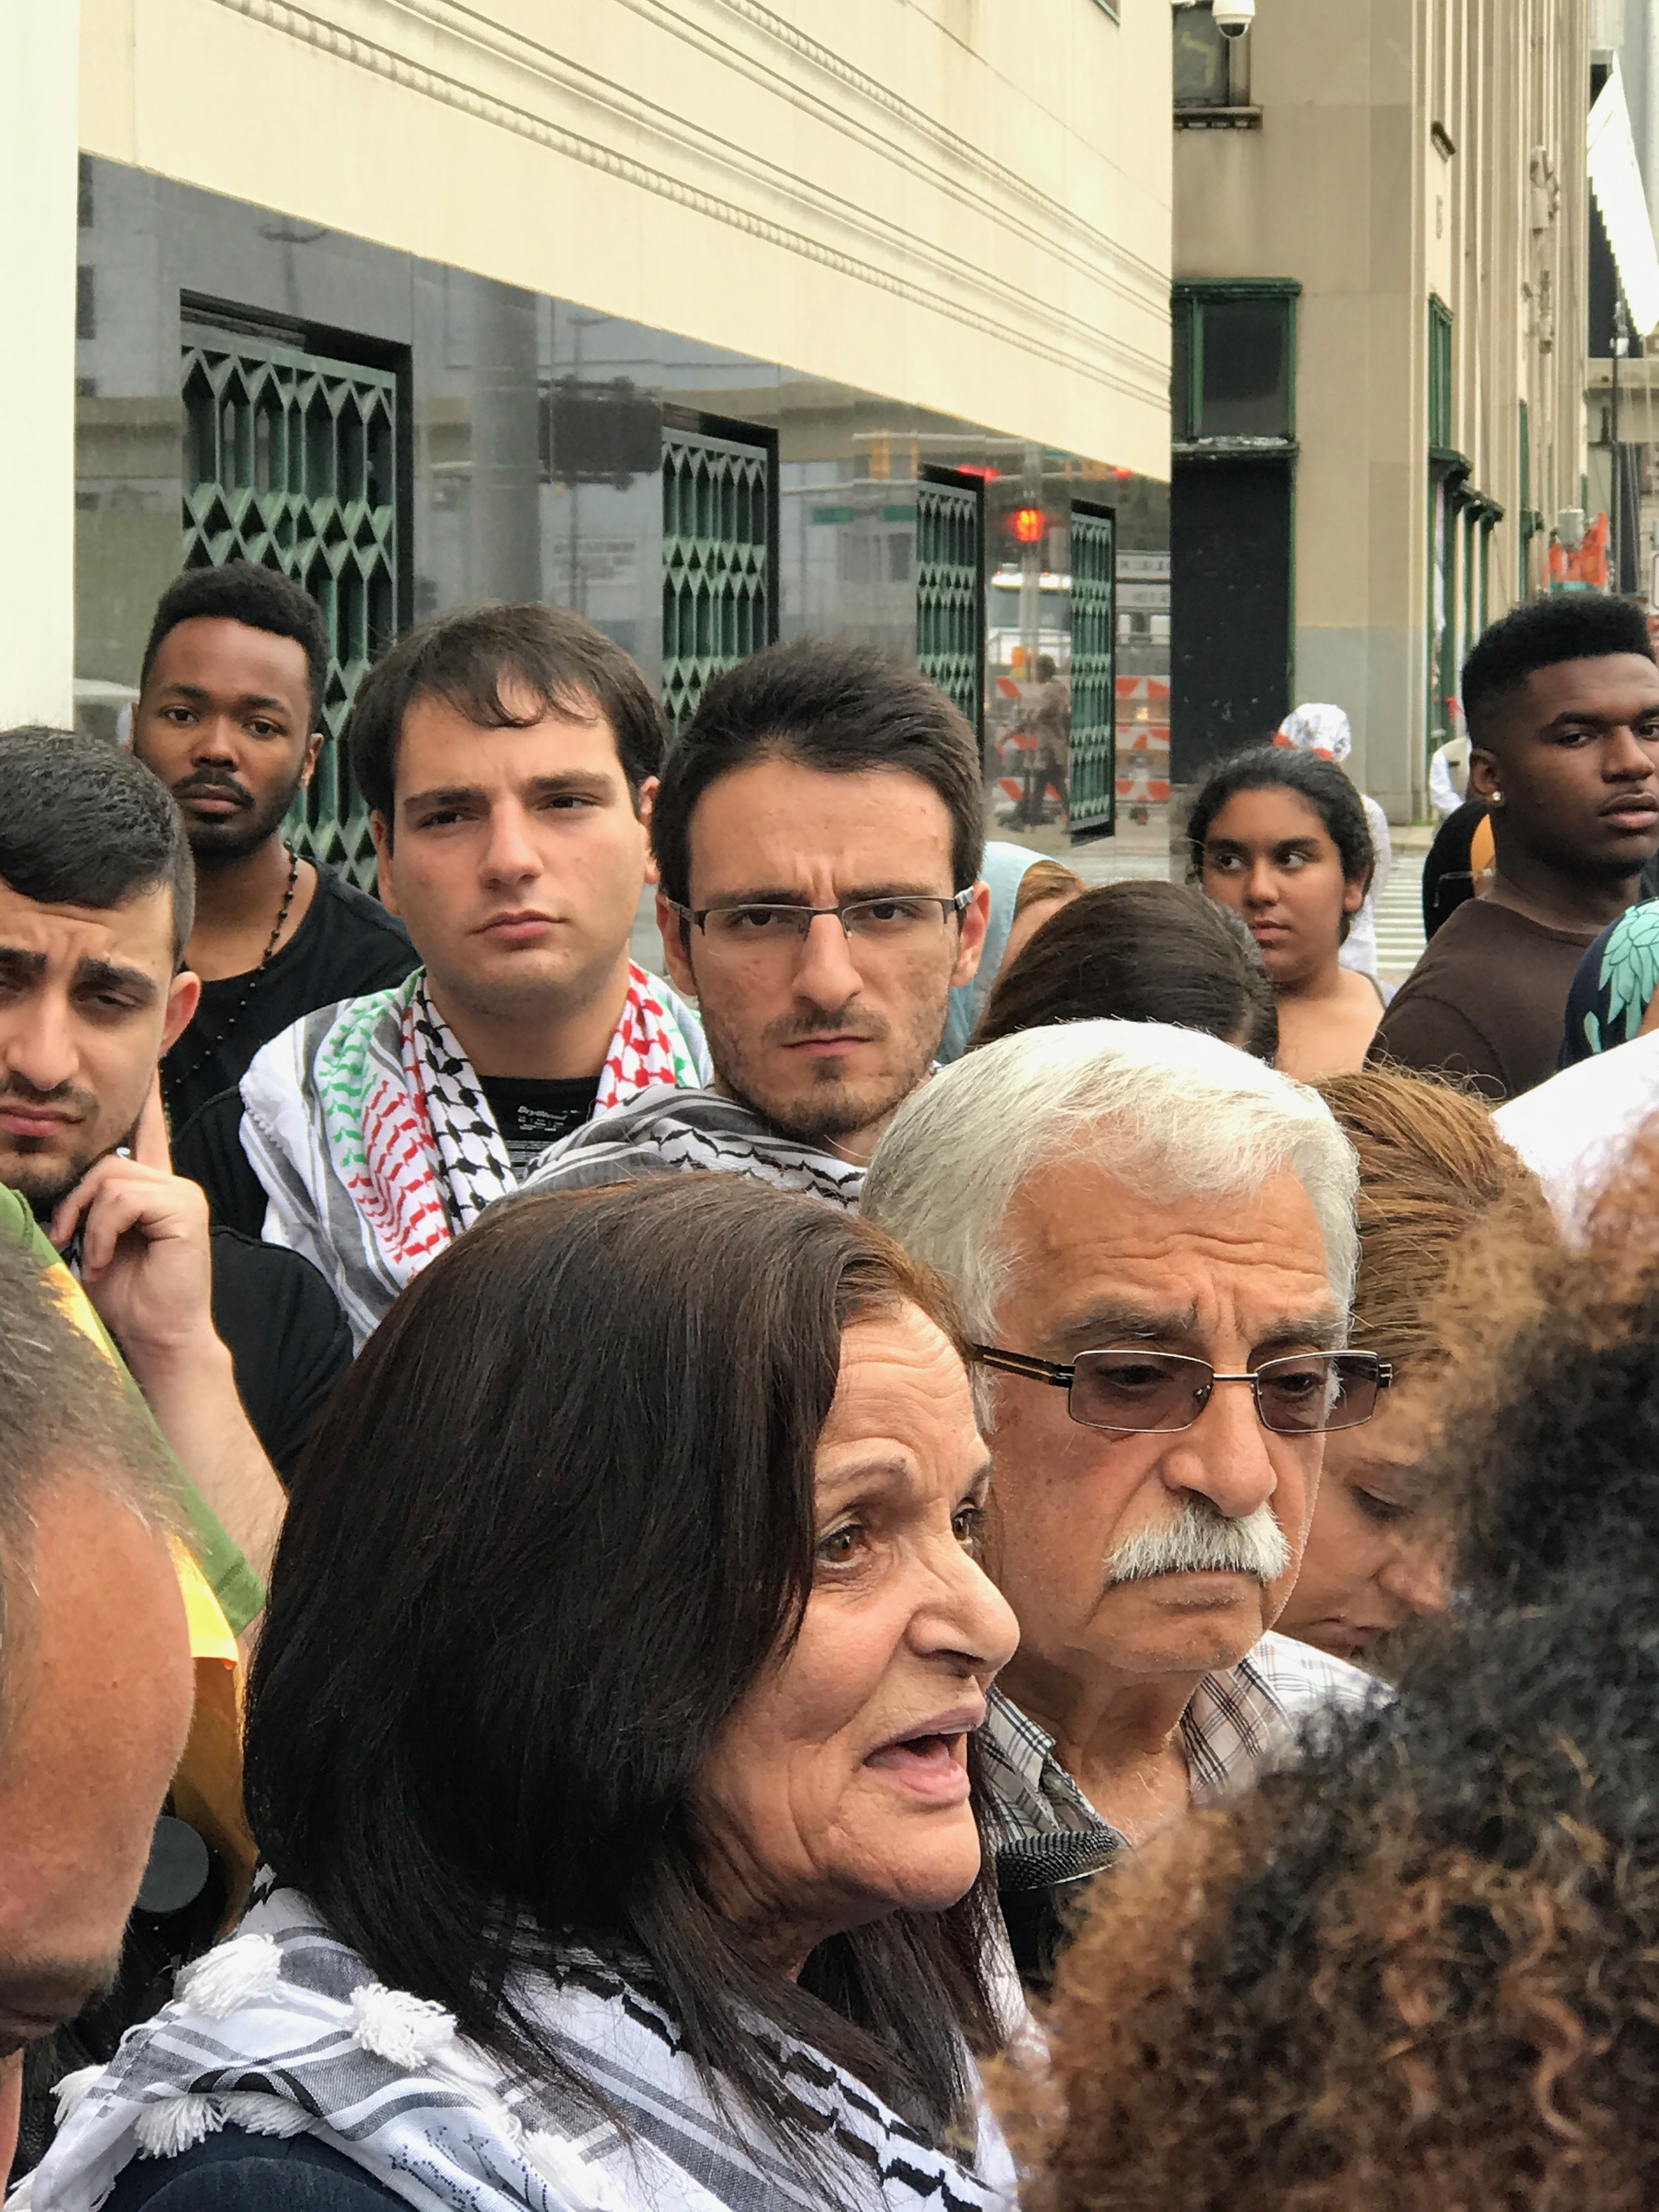 Rasmea Speaking to Supporters. (Photo by Bill Chambers)